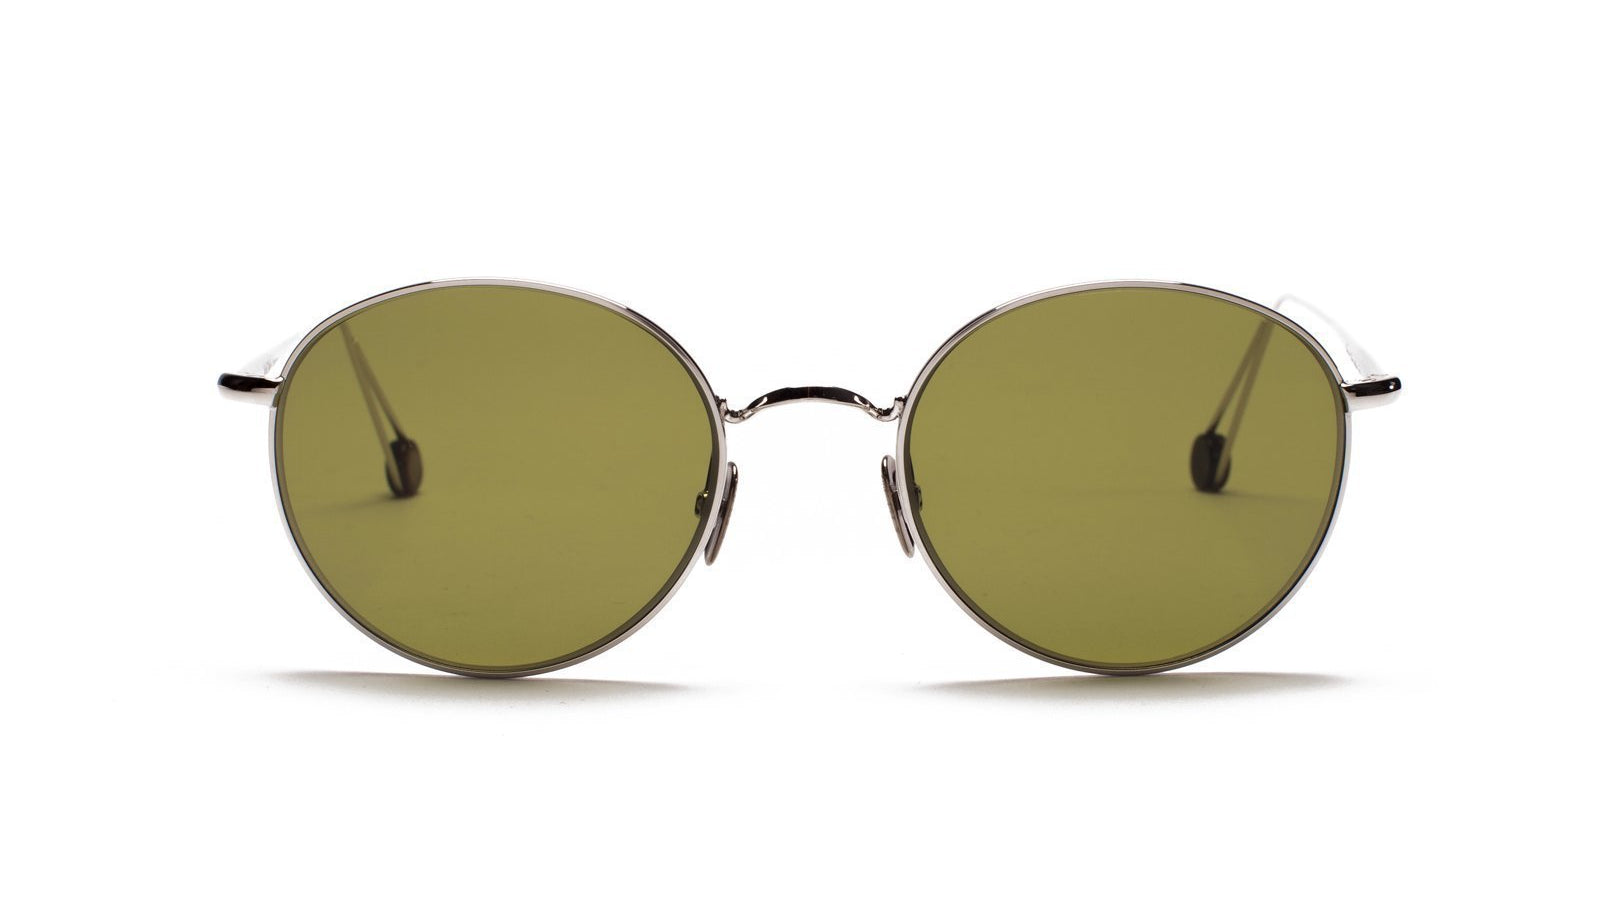 Ahlem Place de l'Opera Sunglasses White Gold